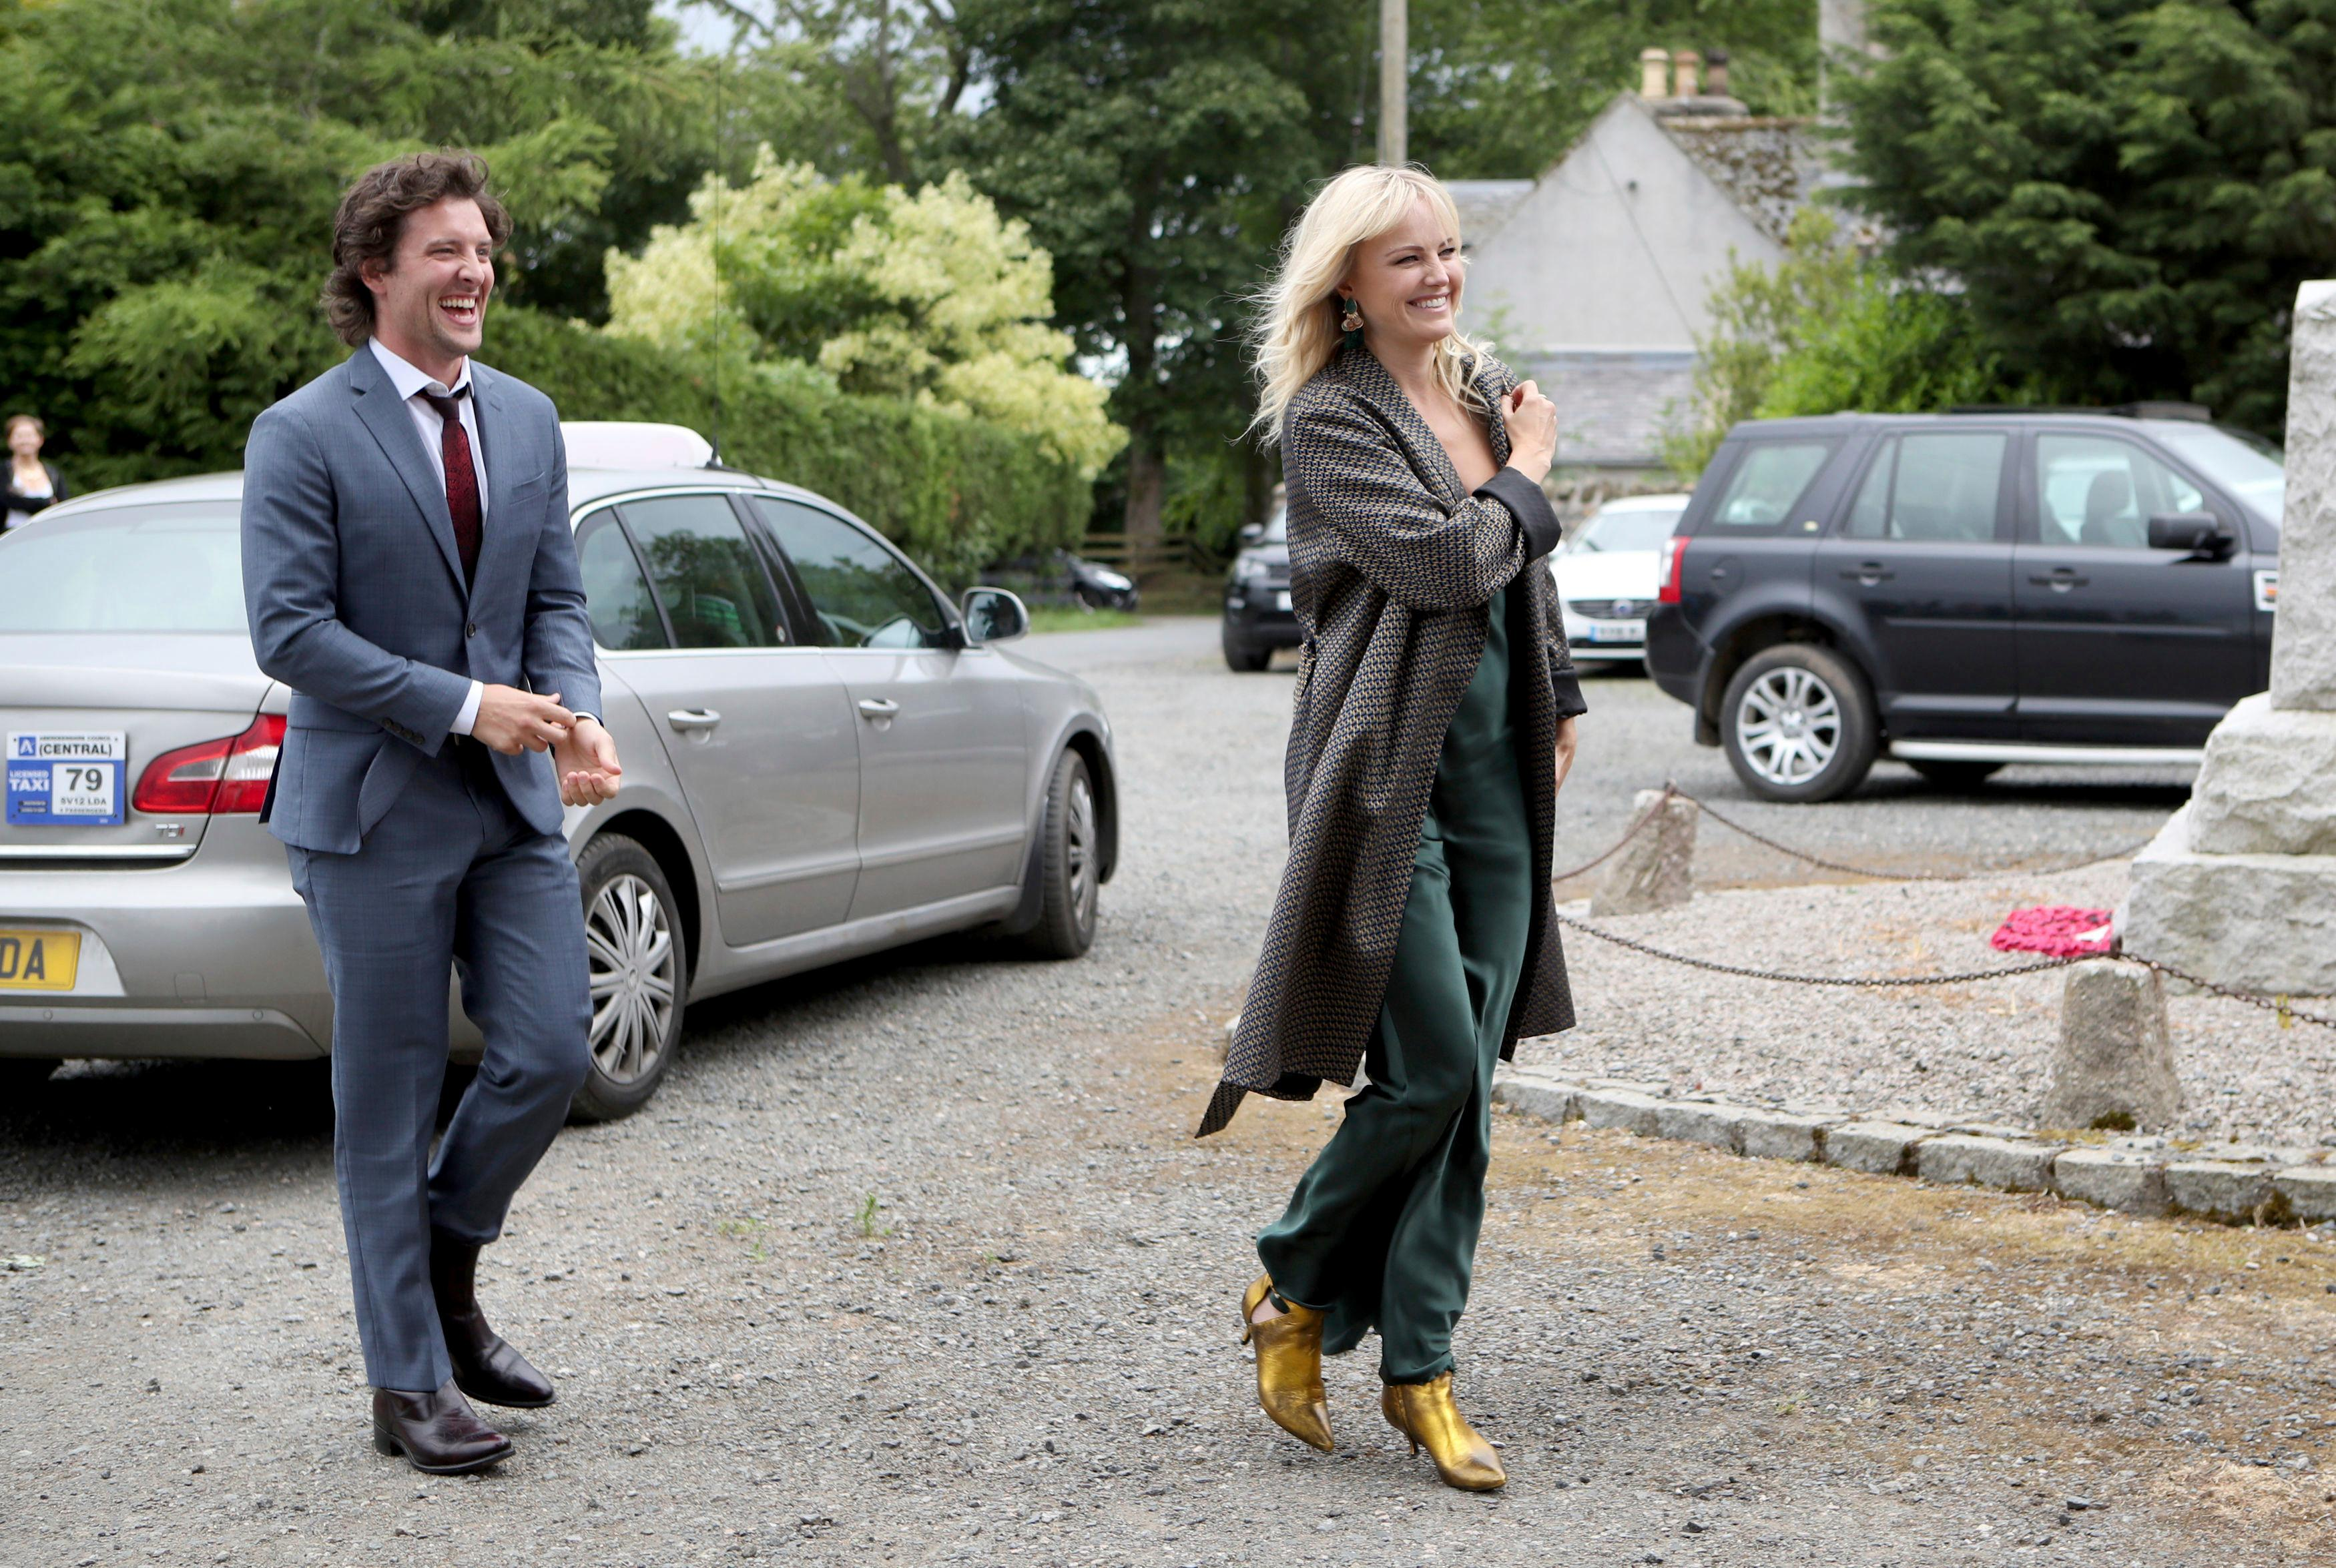 "Actor Jack Donnelly arrives with partner Malin Akerman for the wedding ceremony of Game Of Thrones actors Kit Harington and Rose Leslie, at Rayne Church, Kirkton of Rayne in Aberdeenshire, Scotland, Saturday June 23, 2018. Former ""Game of Thrones"" co-stars Kit Harington and Rose Leslie are marrying Saturday with a celebration at the bride's family castle in Scotland. The couple and guests arrived at Rayne Church, close to the 900-year-old Wardhill Castle in northeast Scotland, which is owned by Leslie's family. (Jane Barlow/PA via AP)"